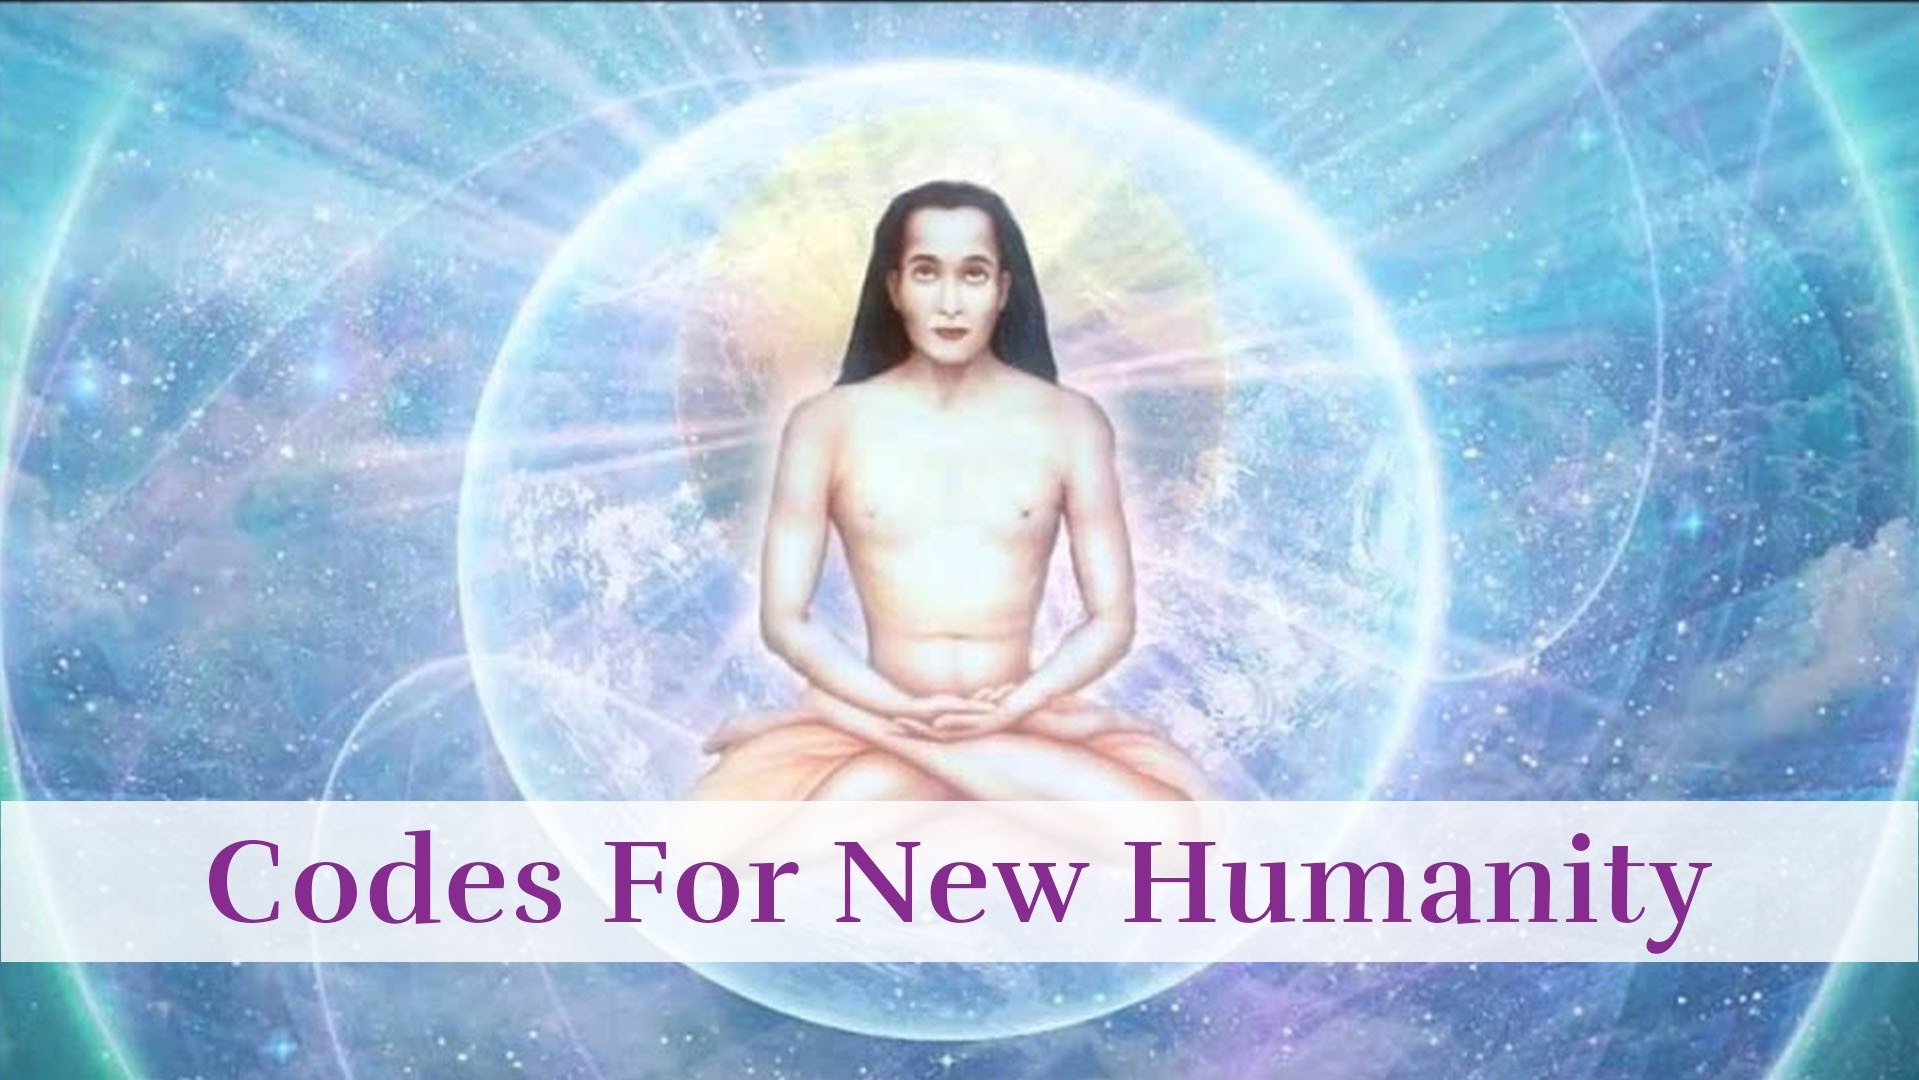 Codes for new humanity channeled guidance with Babaji and Evalena Rose.